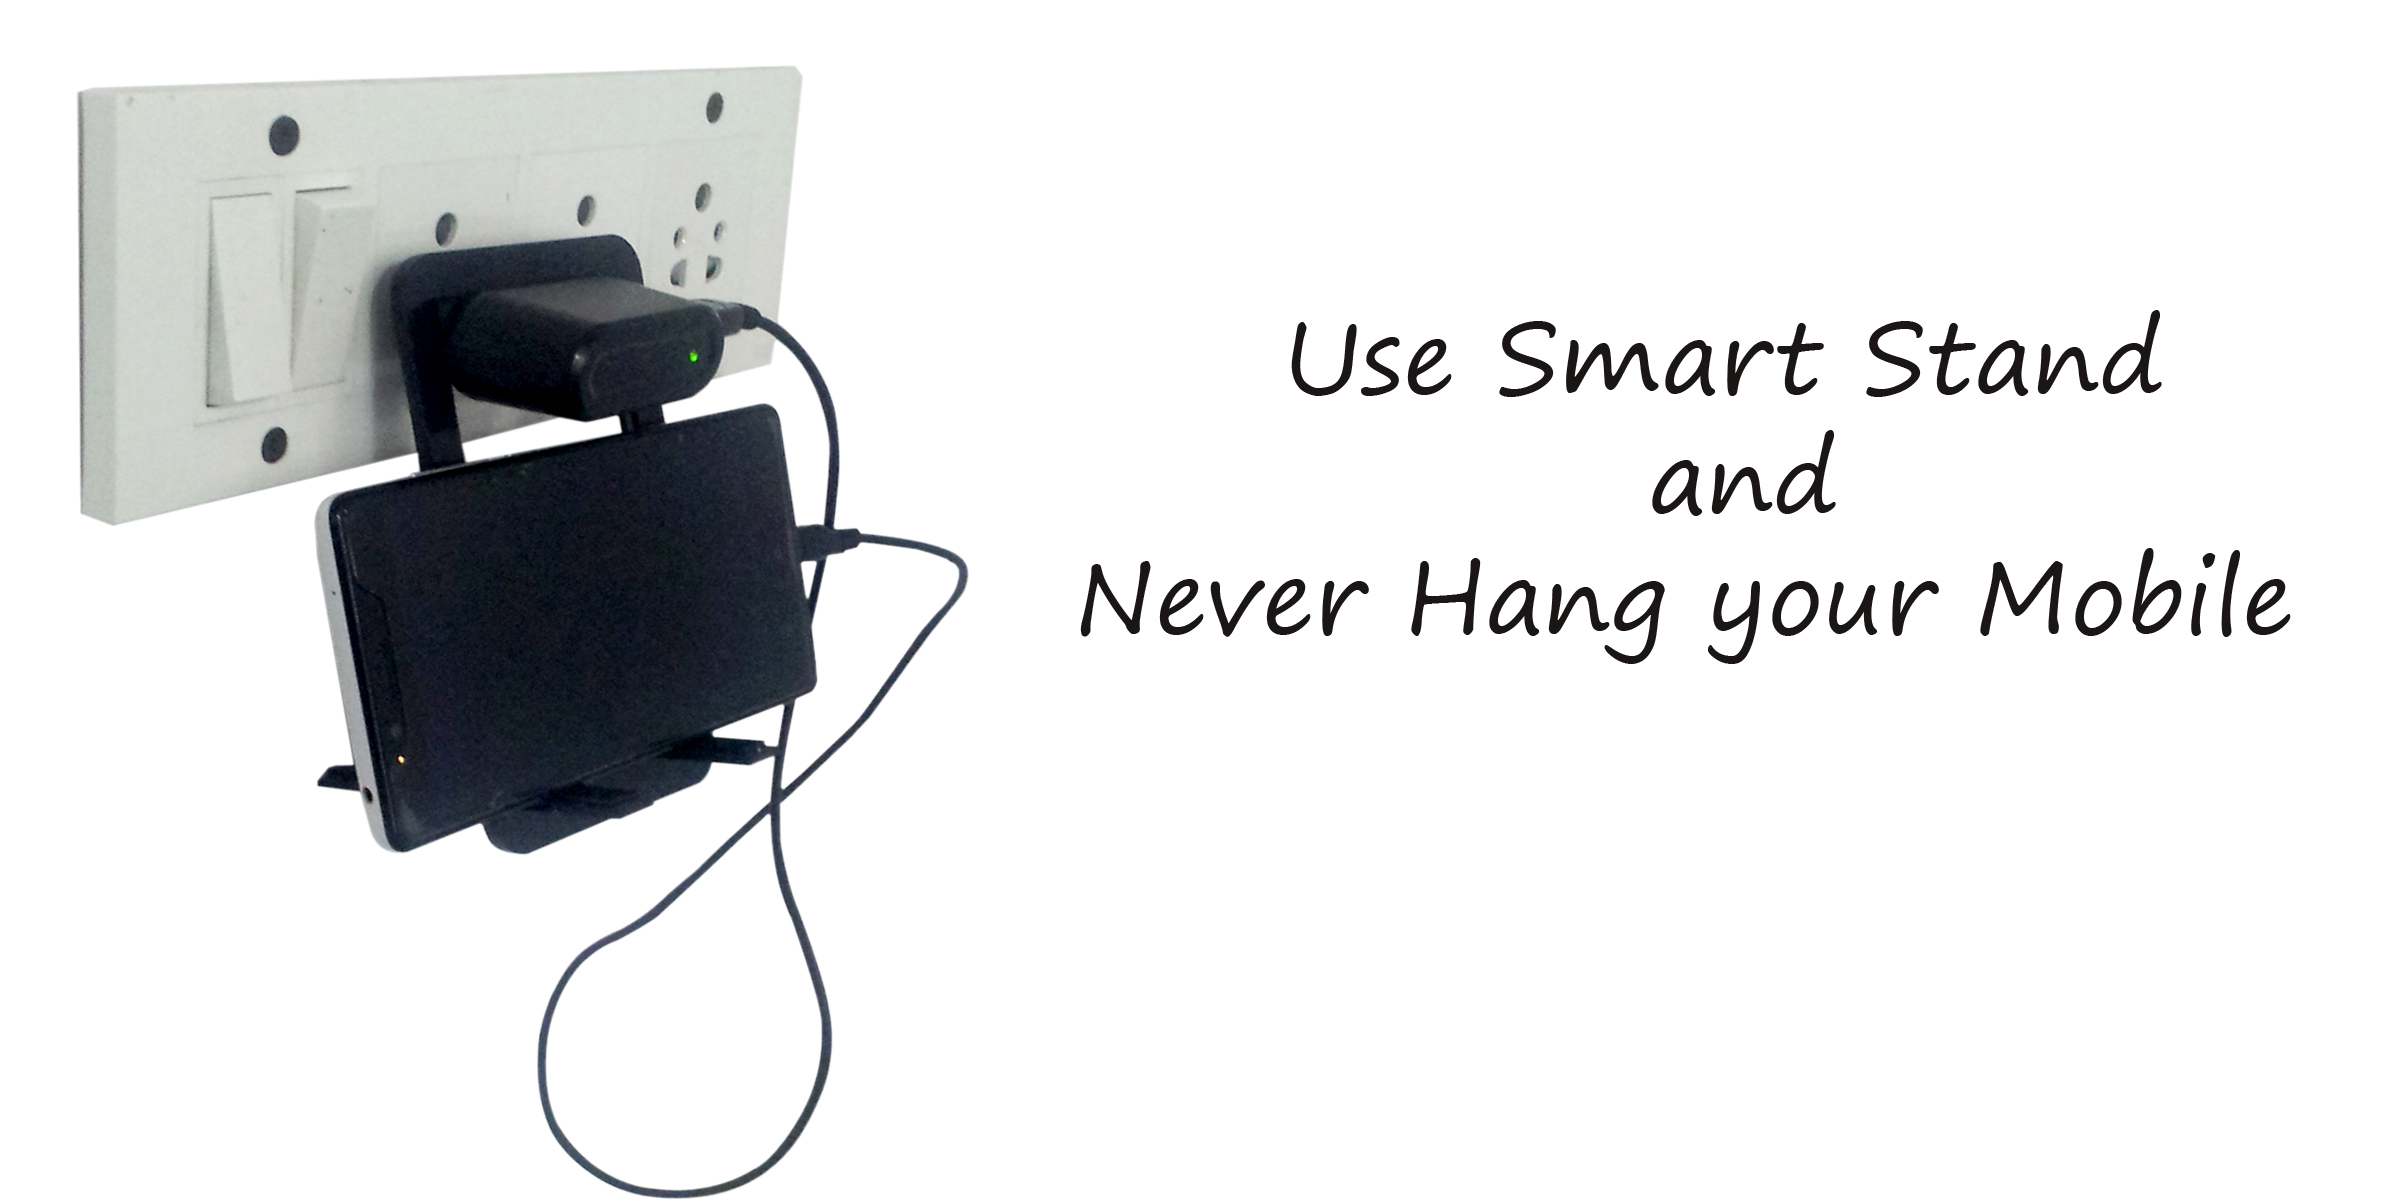 7- Use Smart Stand and never Hang